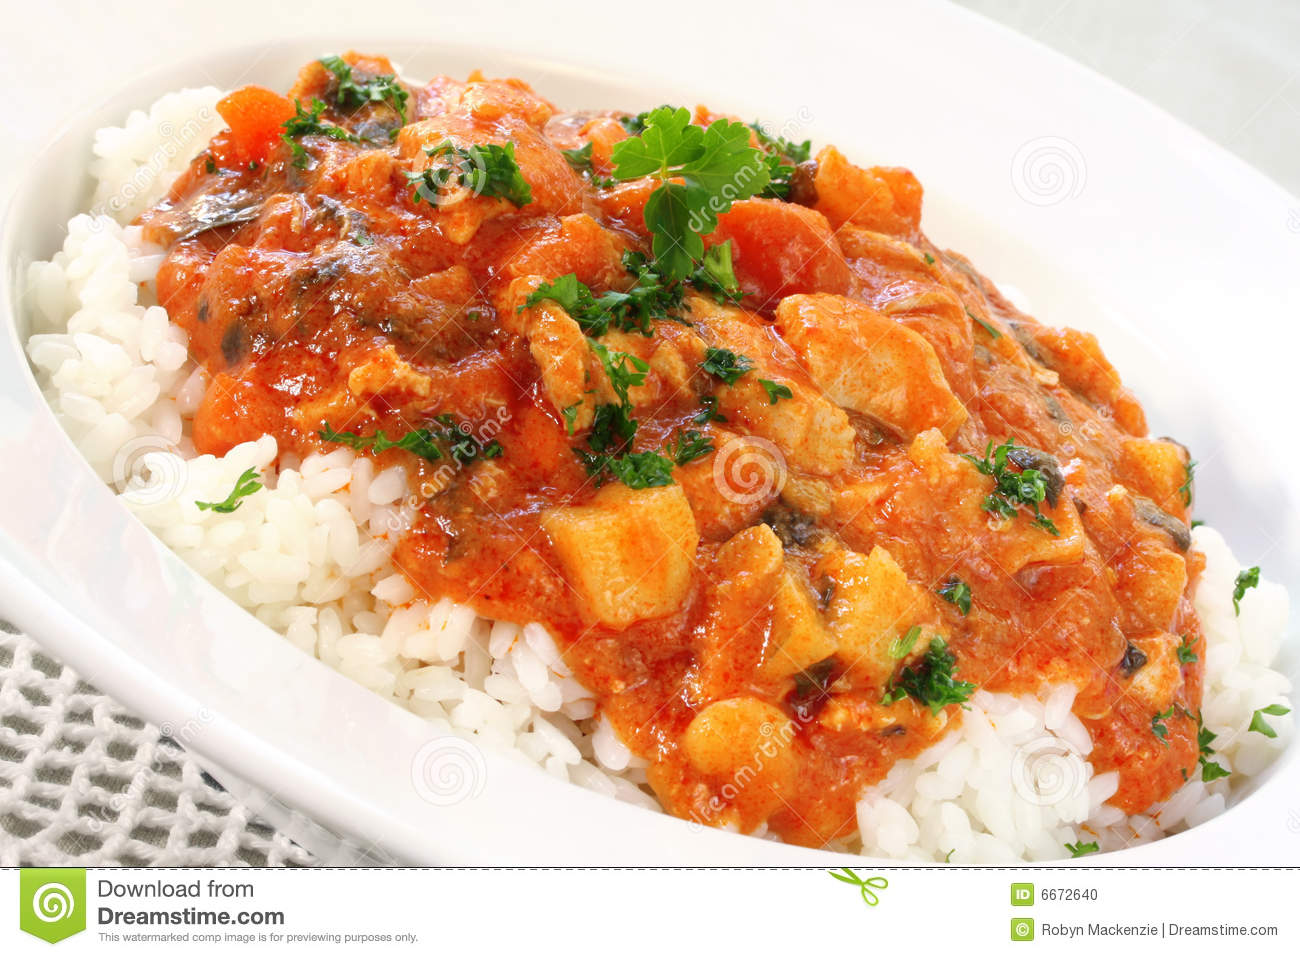 Huhn-Curry